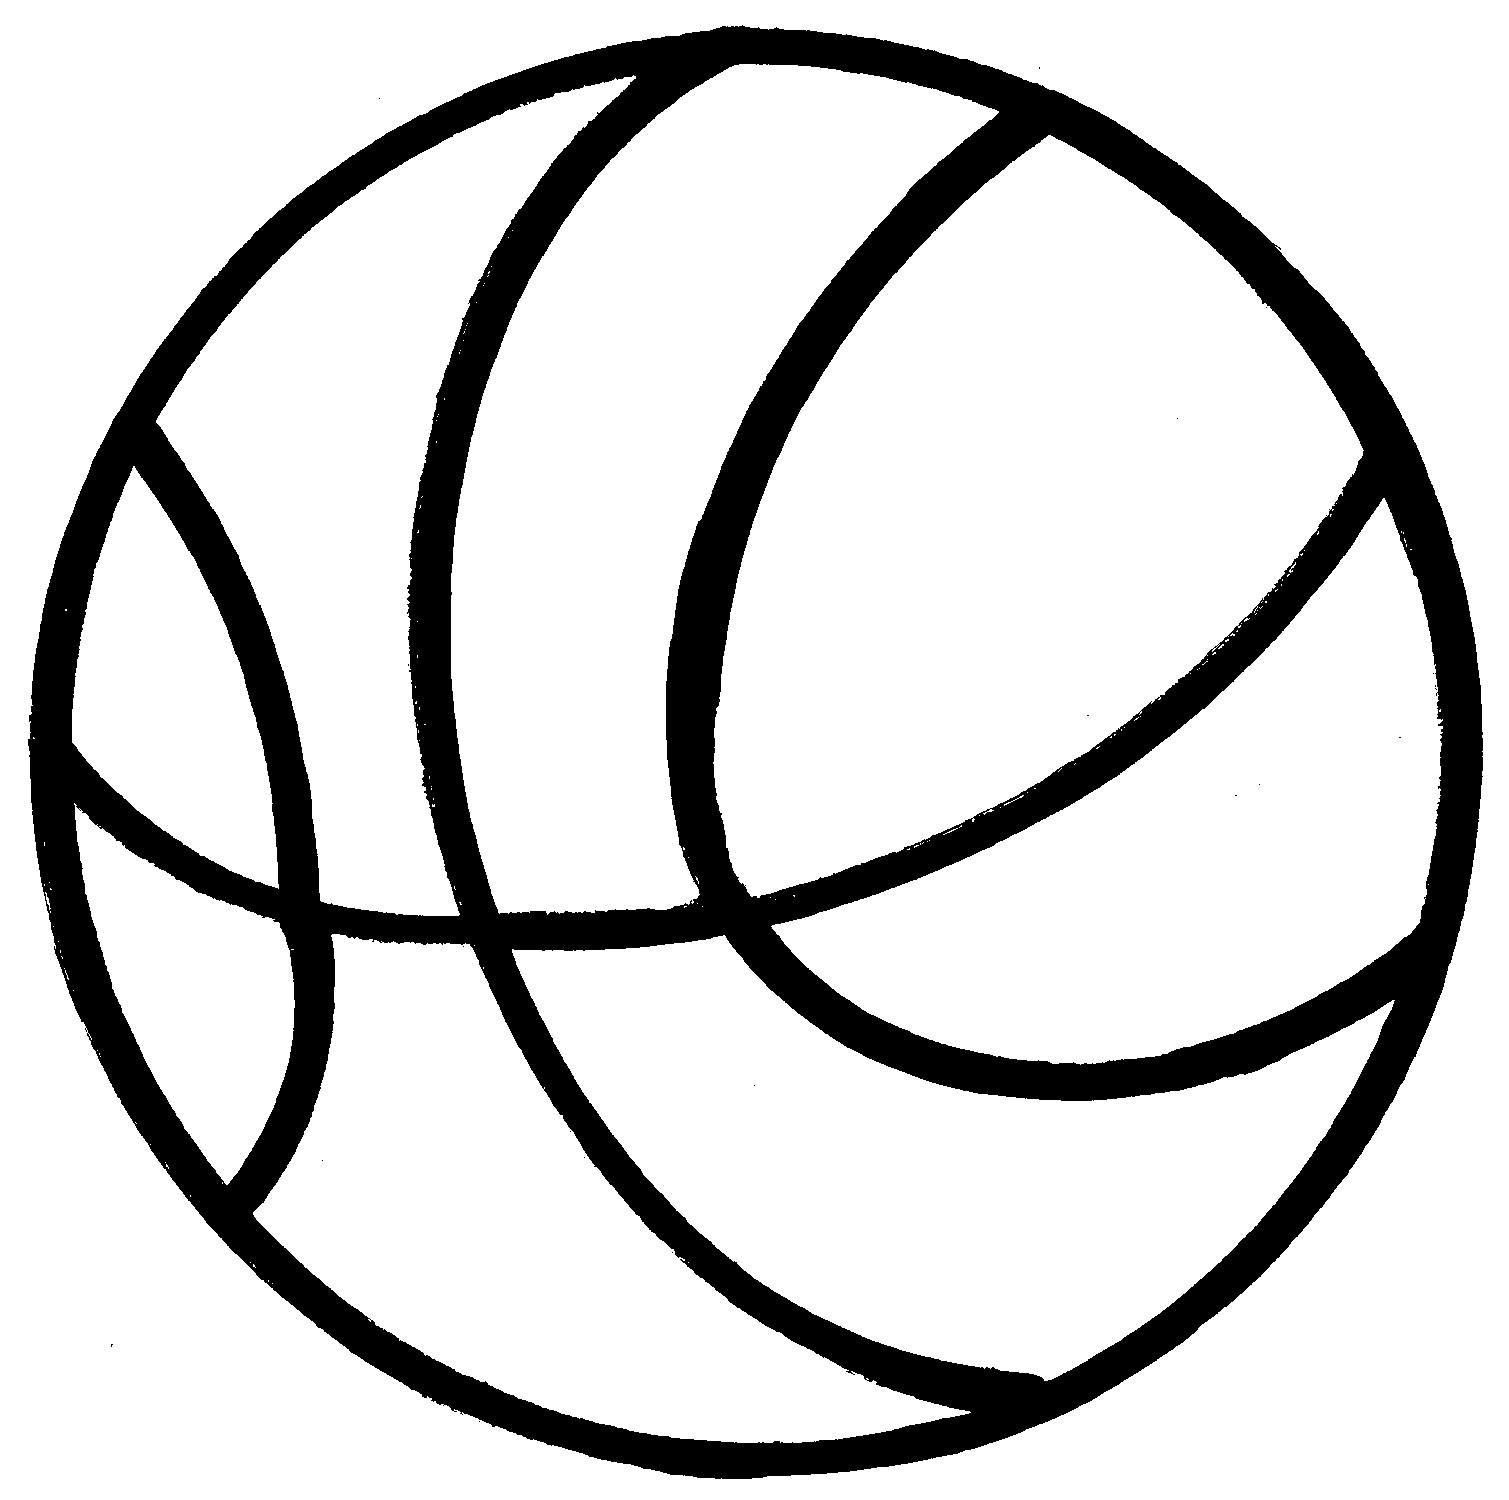 basketball%20hoop%20clipart%20black%20and%20white